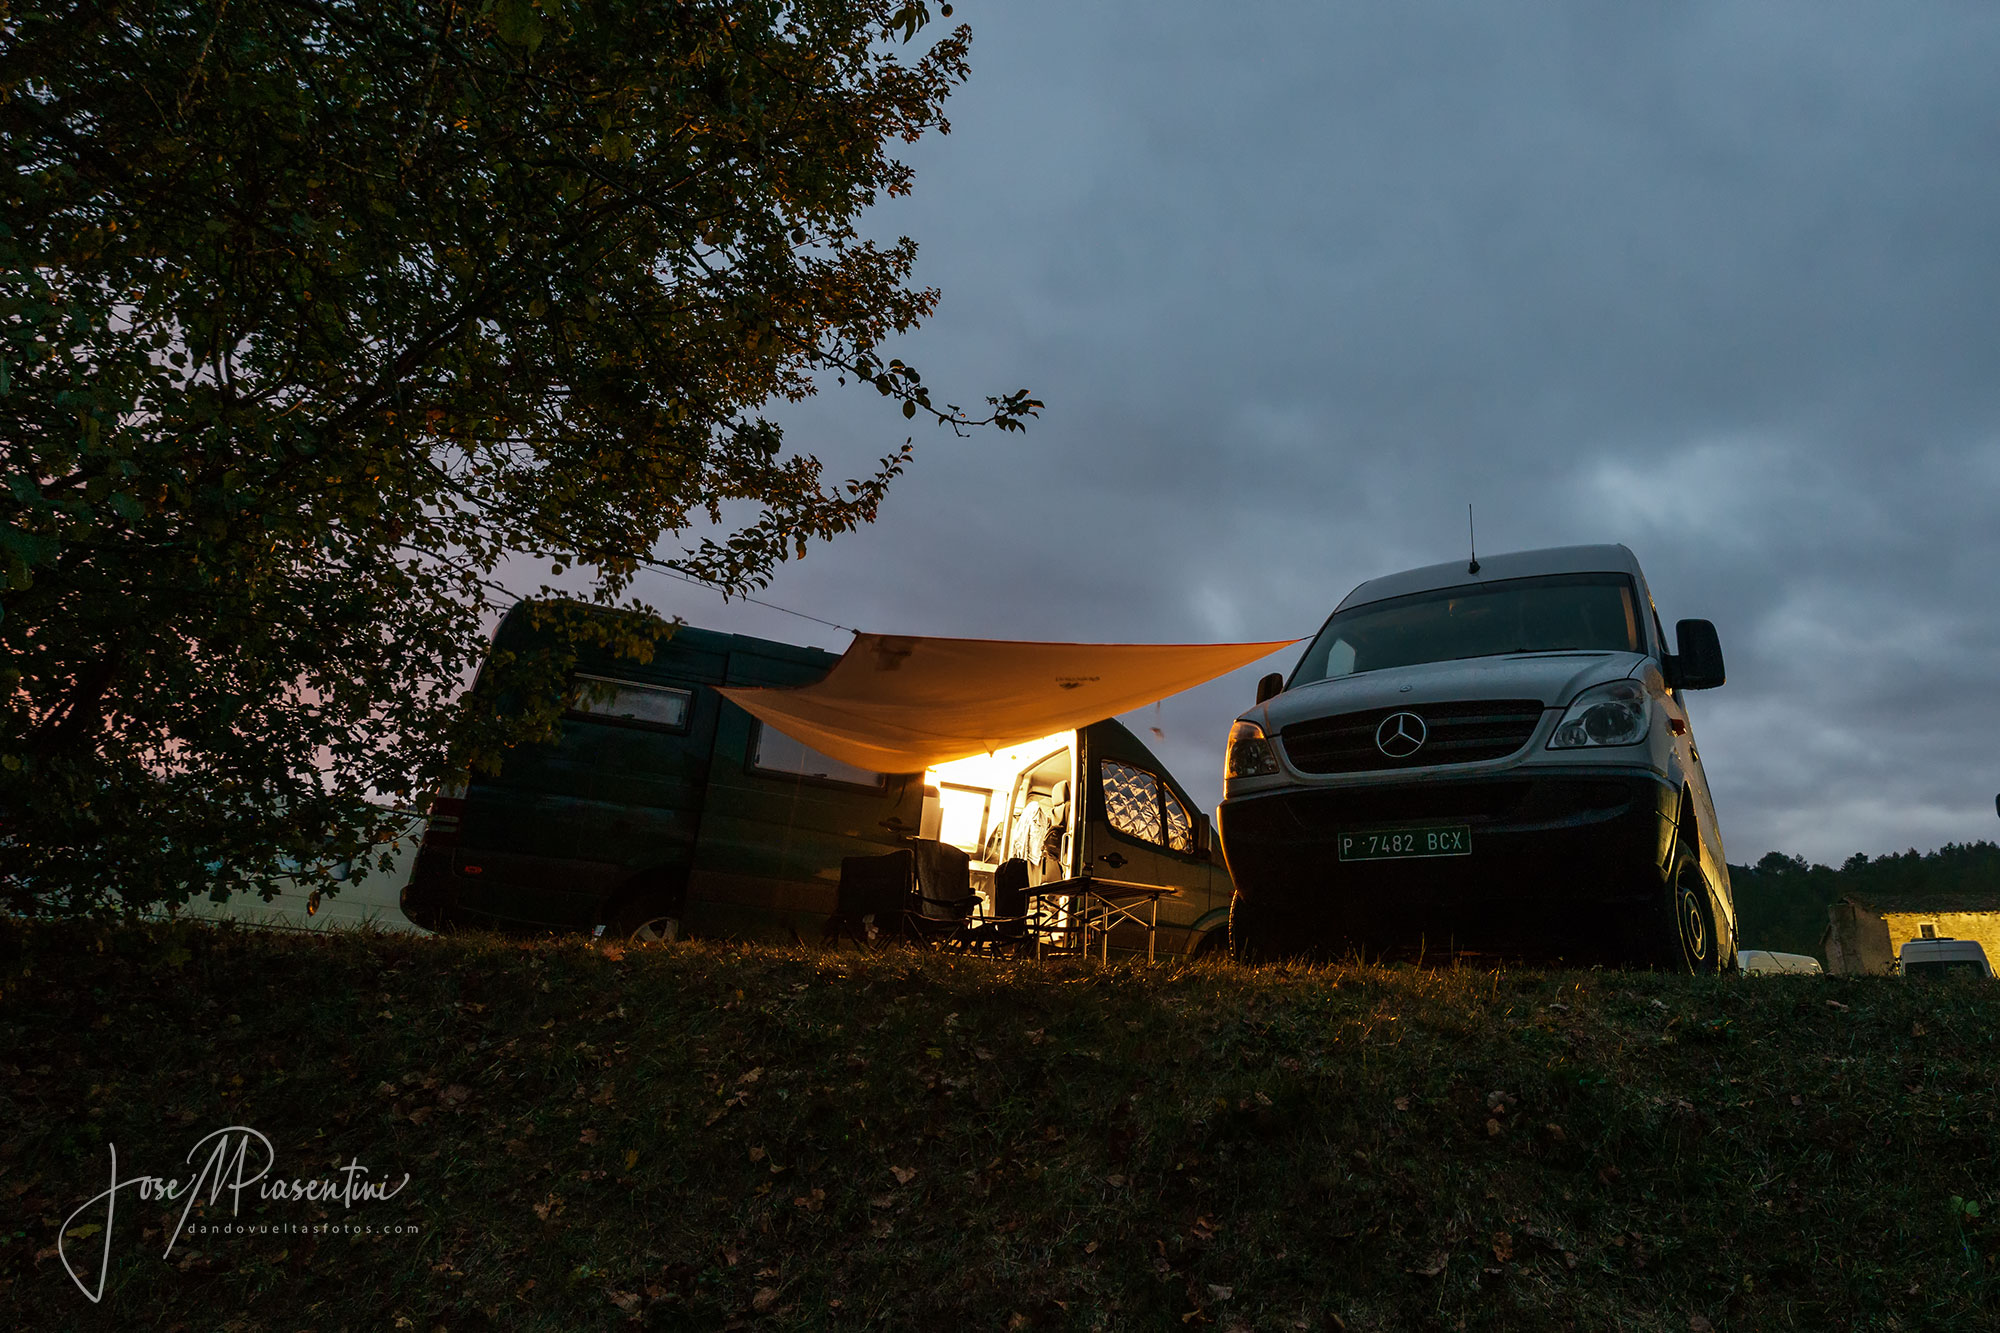 Campers 4x4 overland